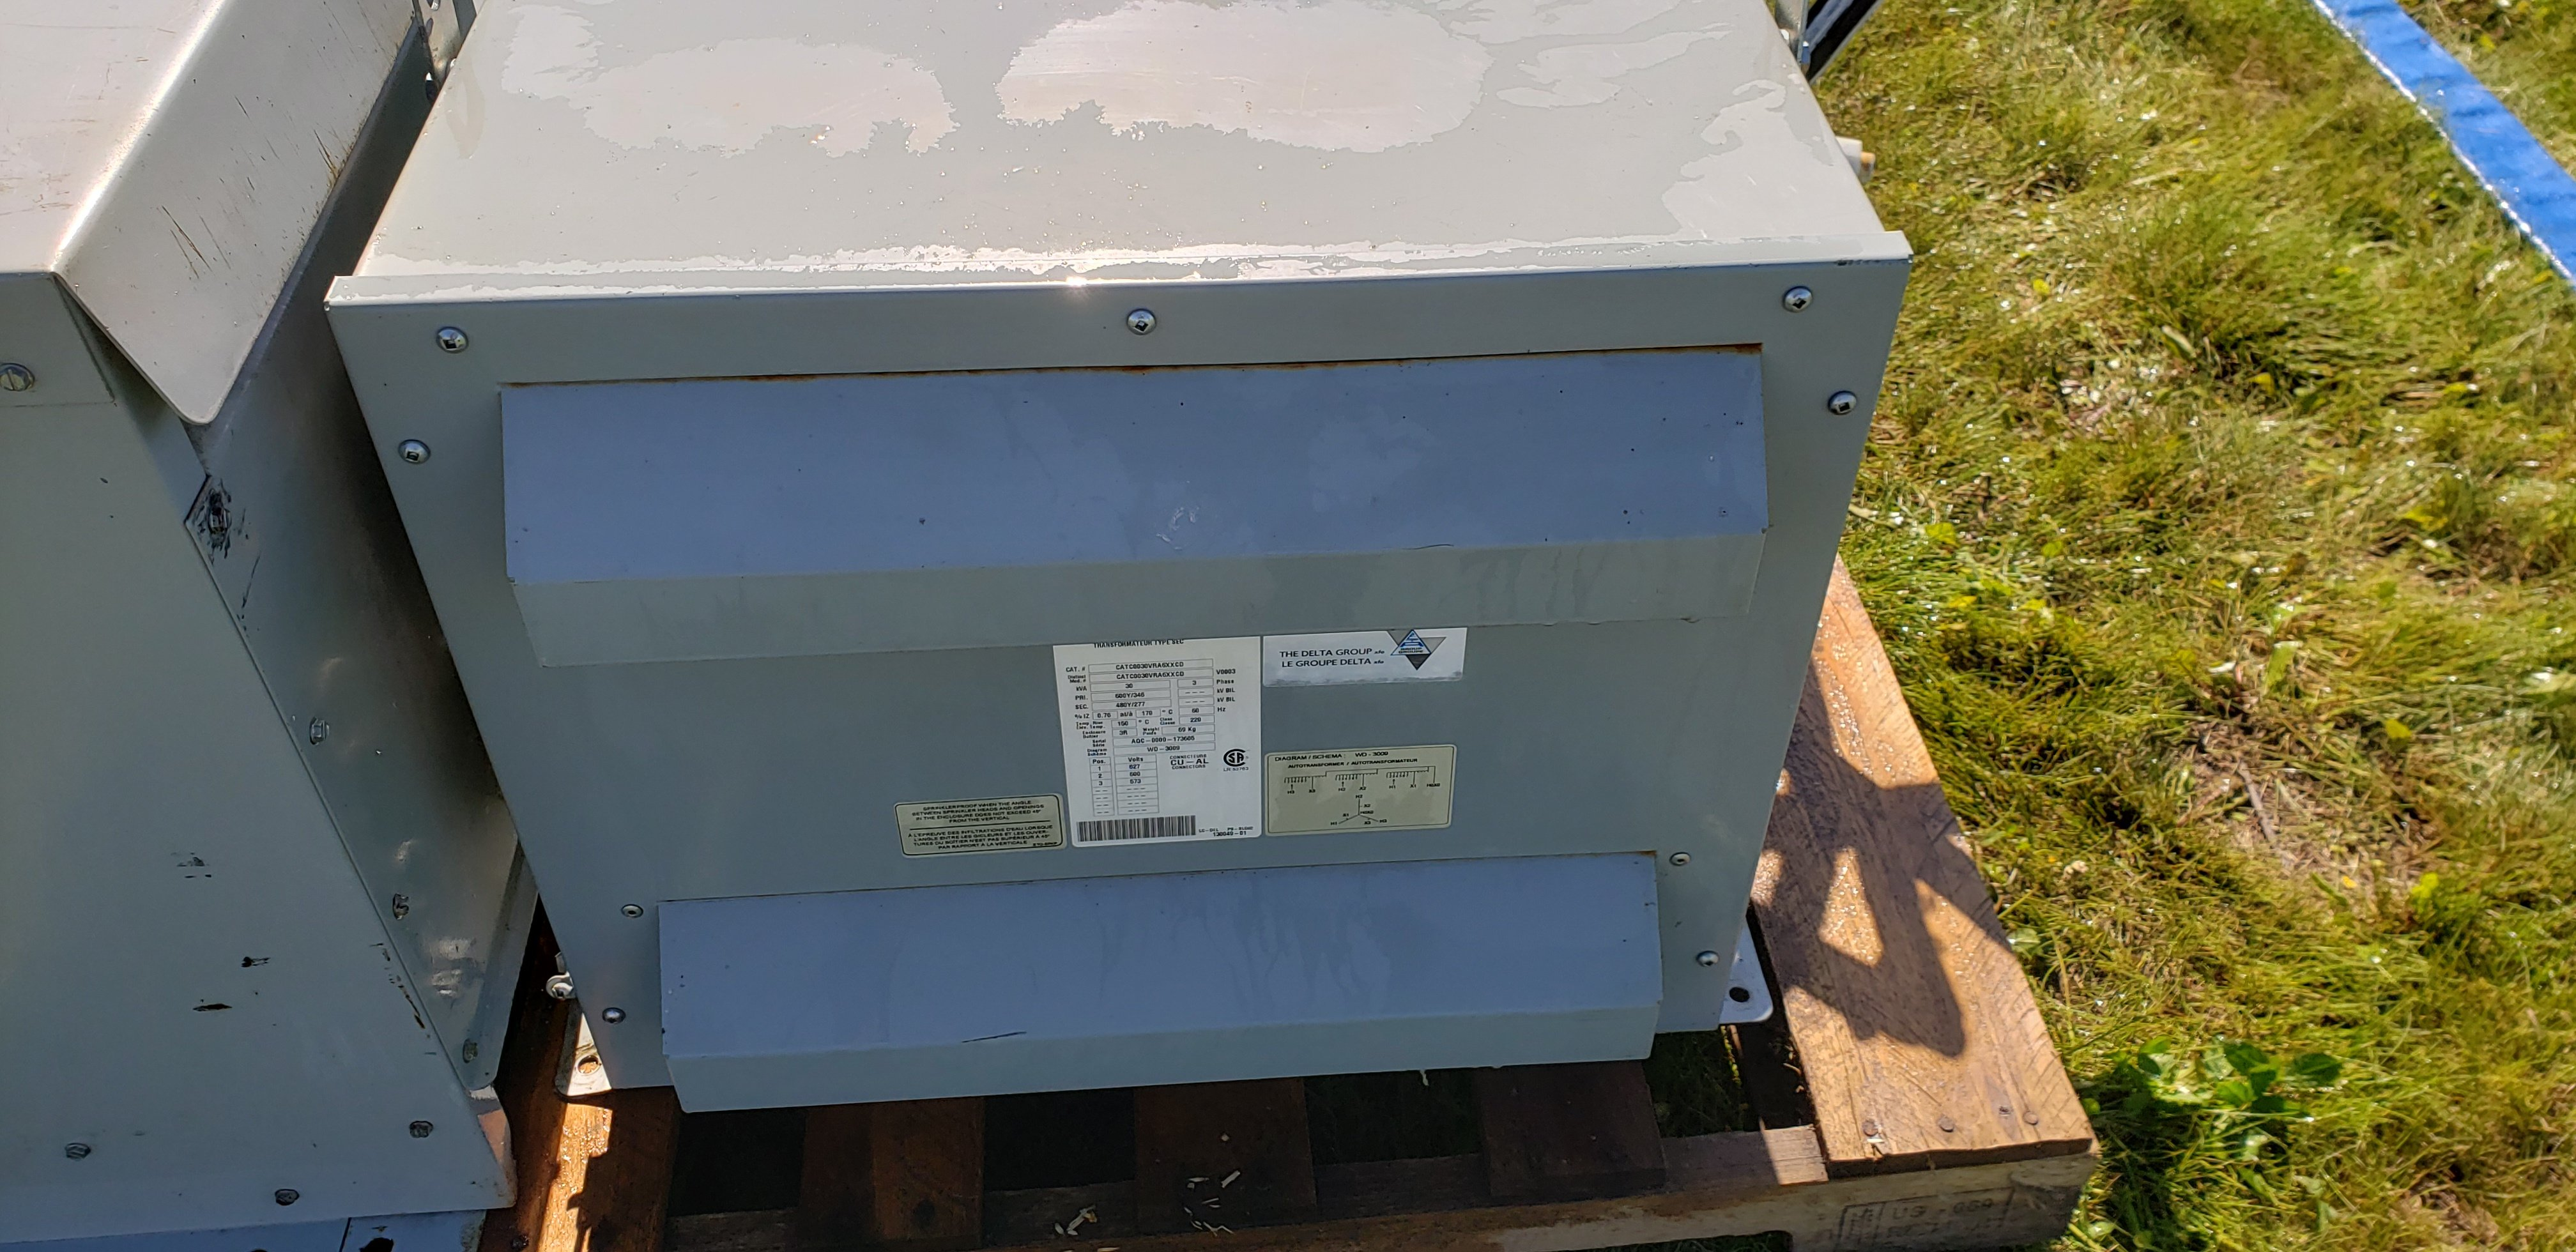 Dry Type Transformer. 3 phase, 60 Hz. Autotransformer